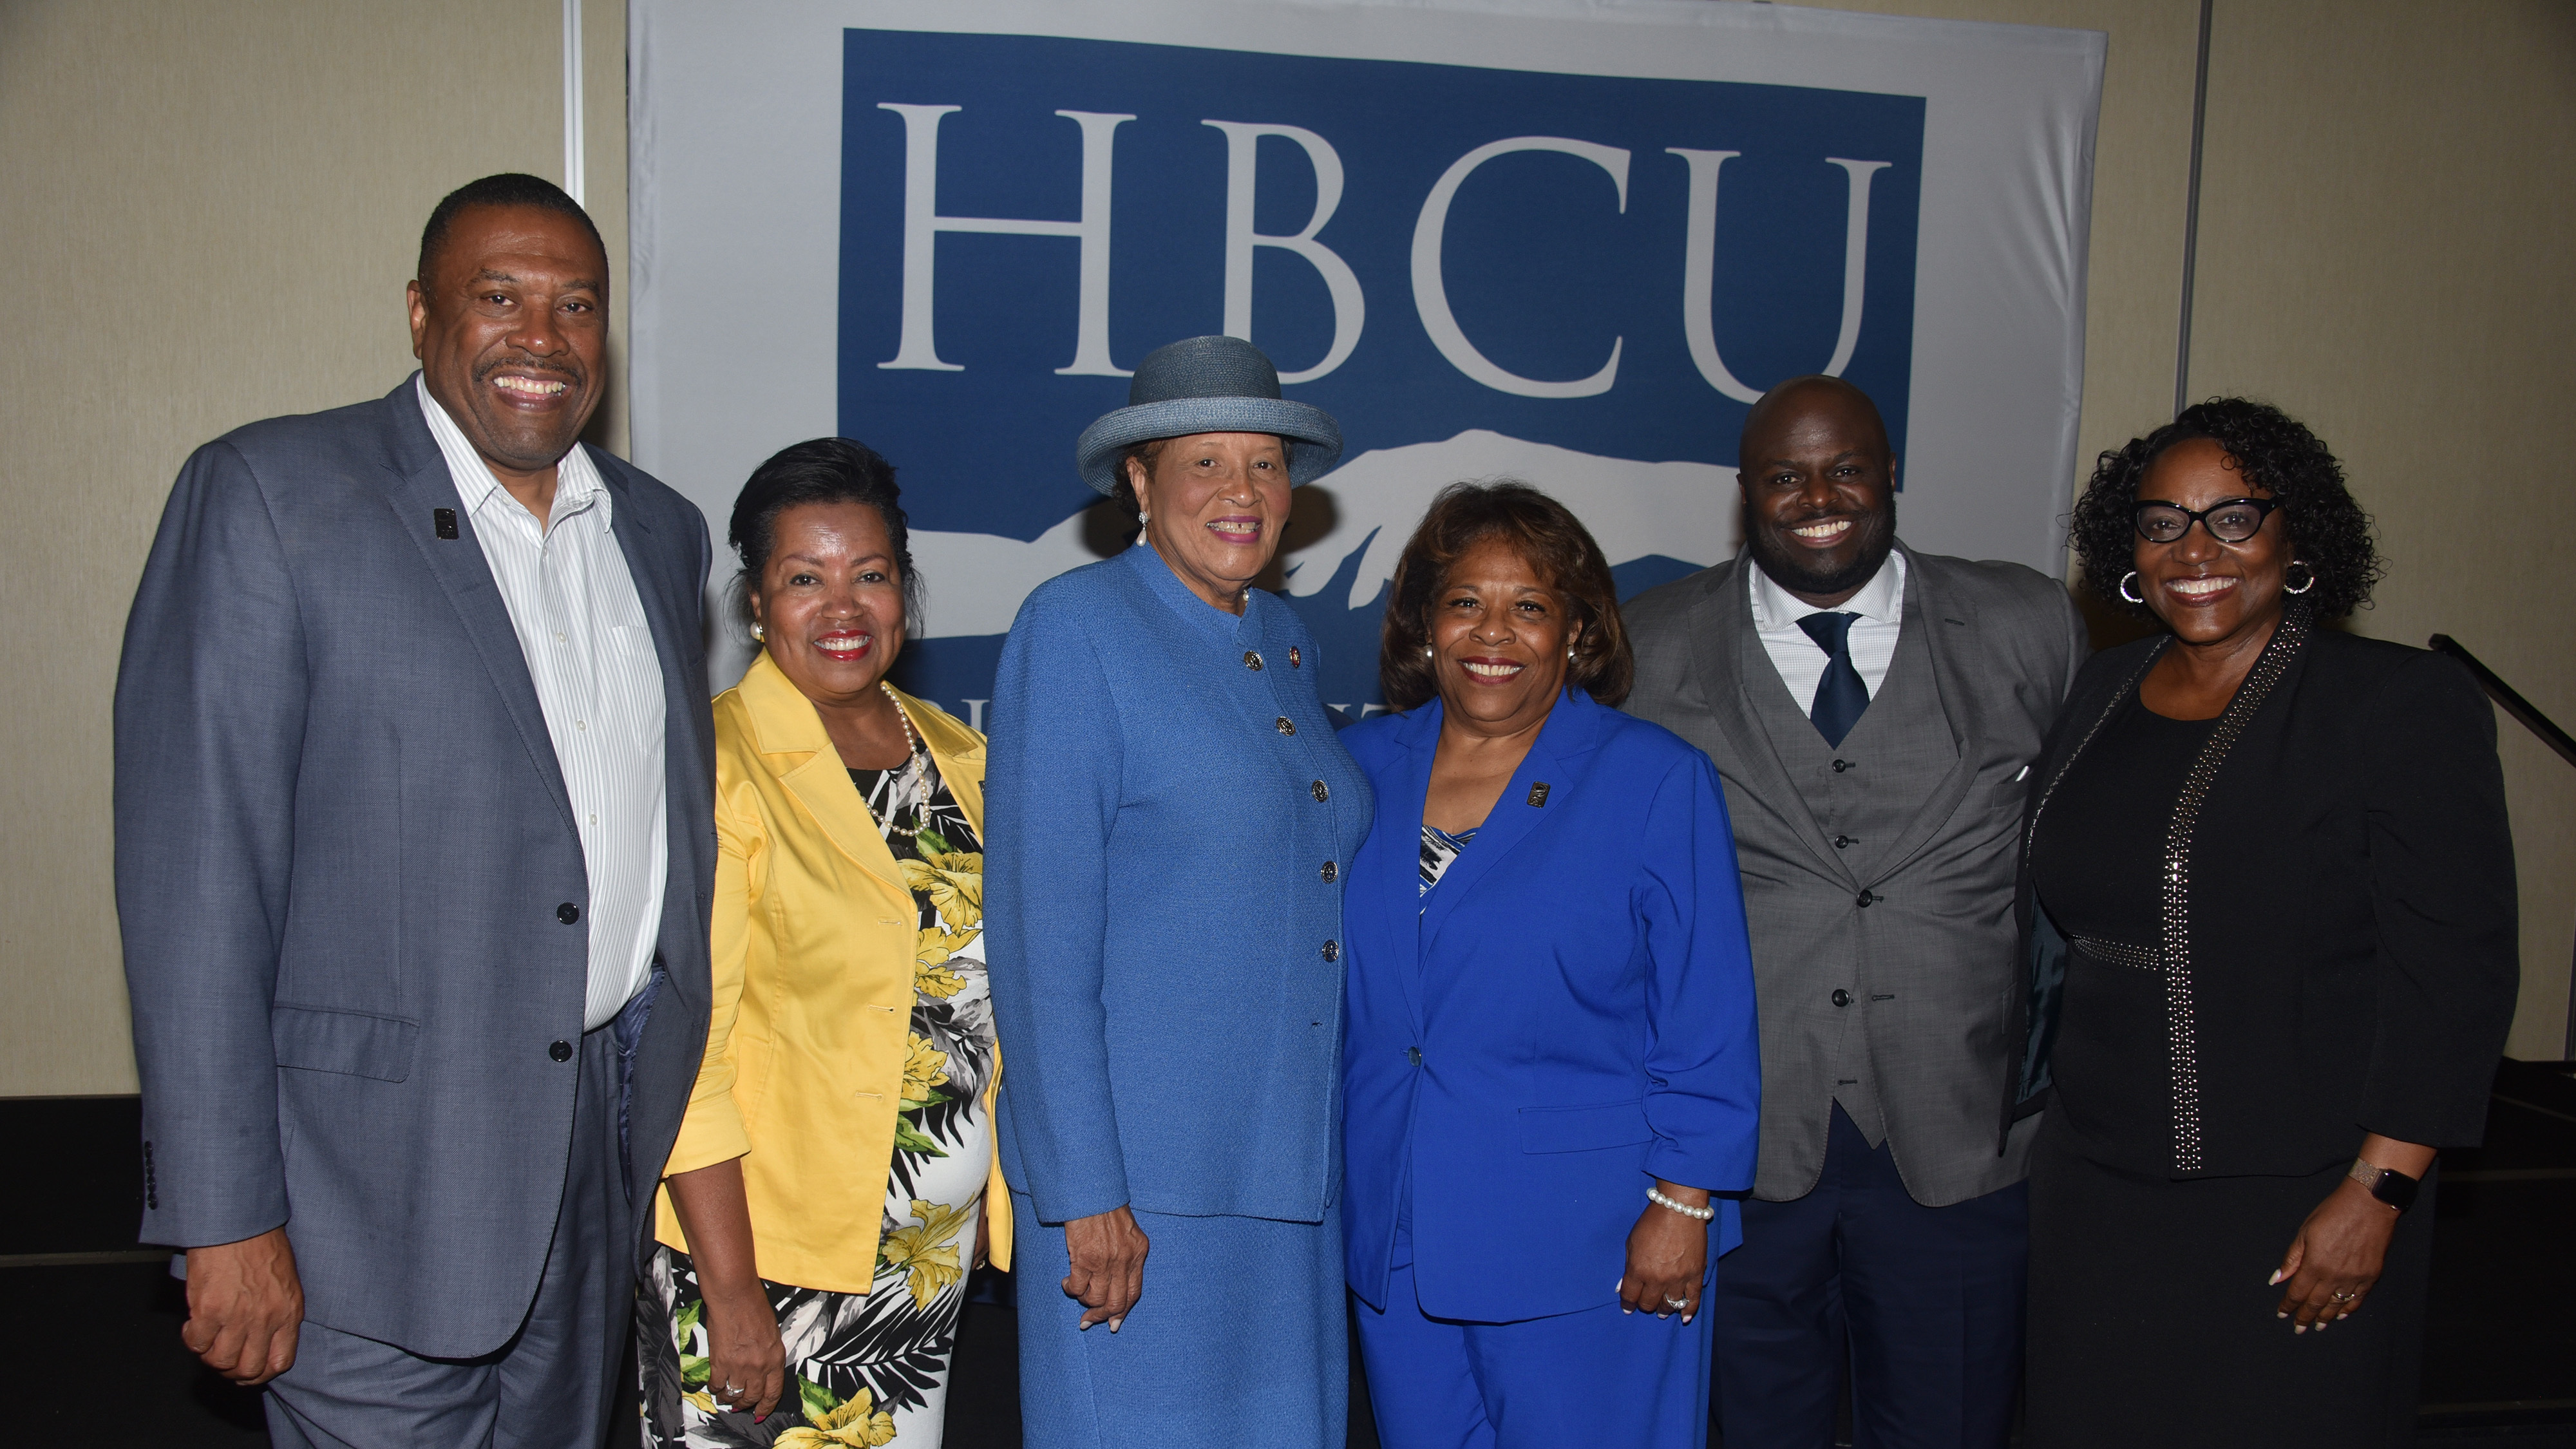 (L-r) John Ridgeway and Dr. Devona Williams, University Board vice chair and chair, respectively, keynote speaker U.S. Rep. Alma Adams, University President Wilma Mishoe, Provost Tony Allen, and Dr. Vita Pickrum, vice president of Institutional Advancement, take a photo moment at the 9th annual Philanthropy Symposium hosted by Delaware State University.